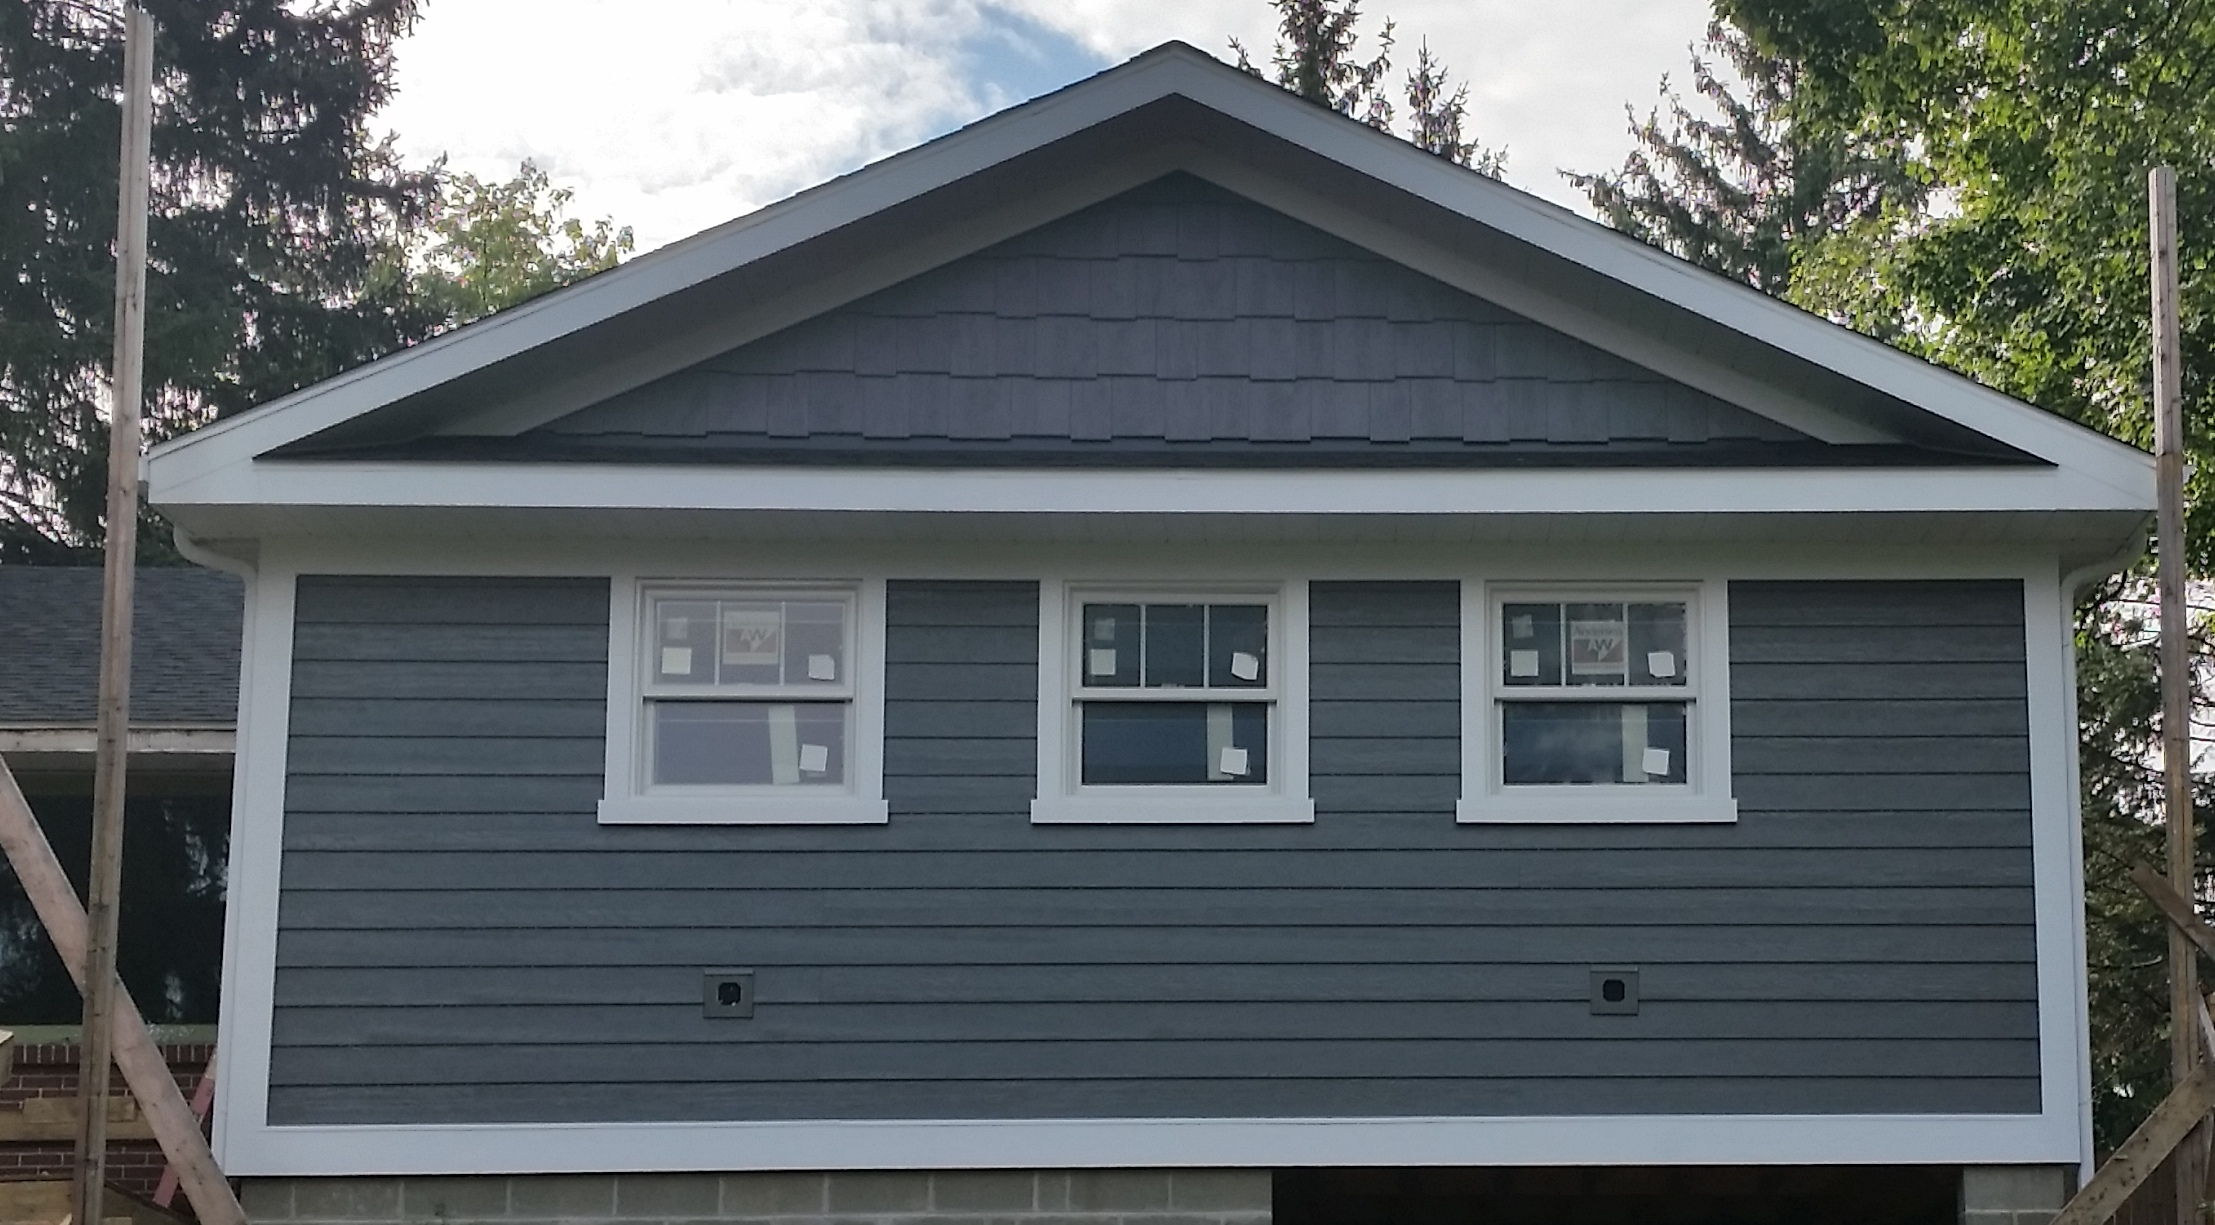 First Time Using SmartSide - Windows, Siding and Doors - Contractor Talk